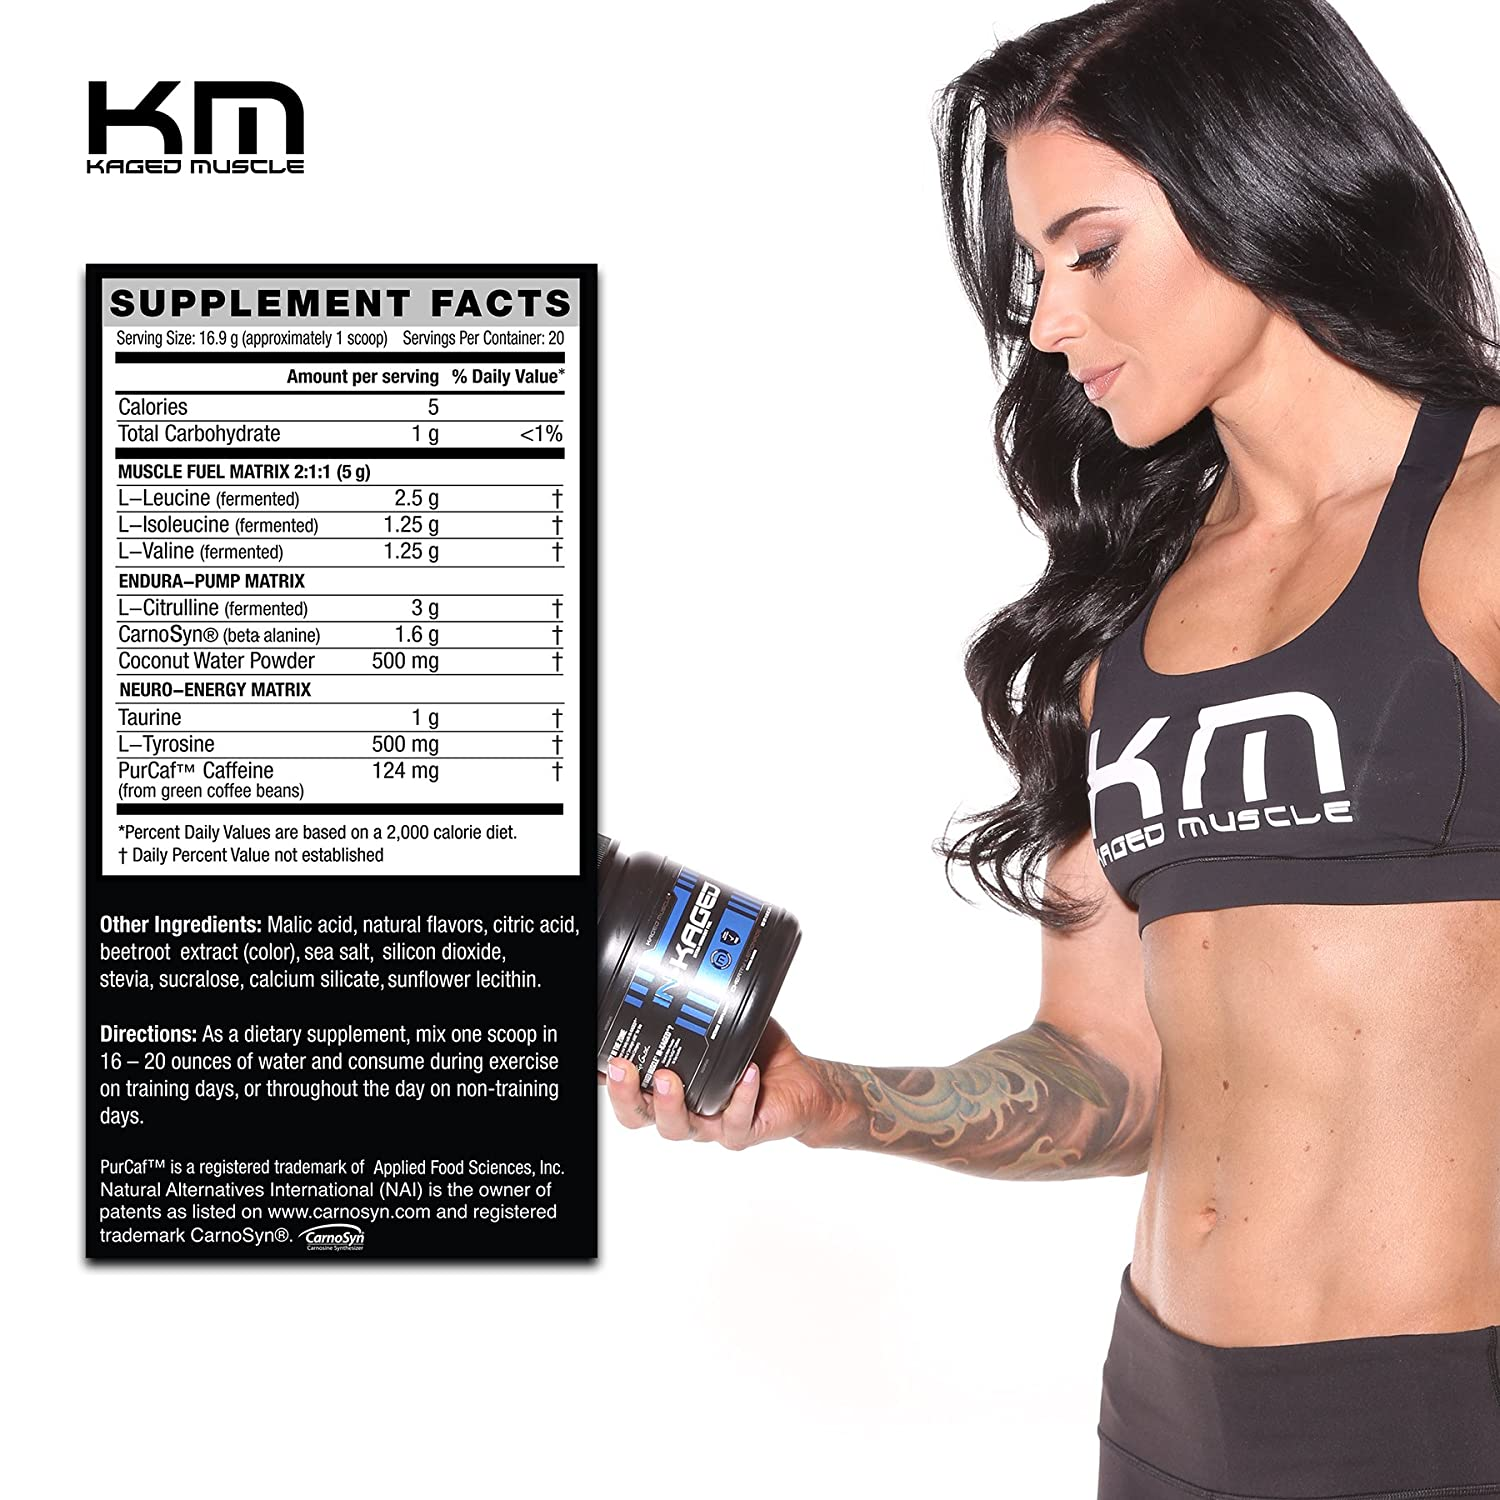 Intra-workout supplements